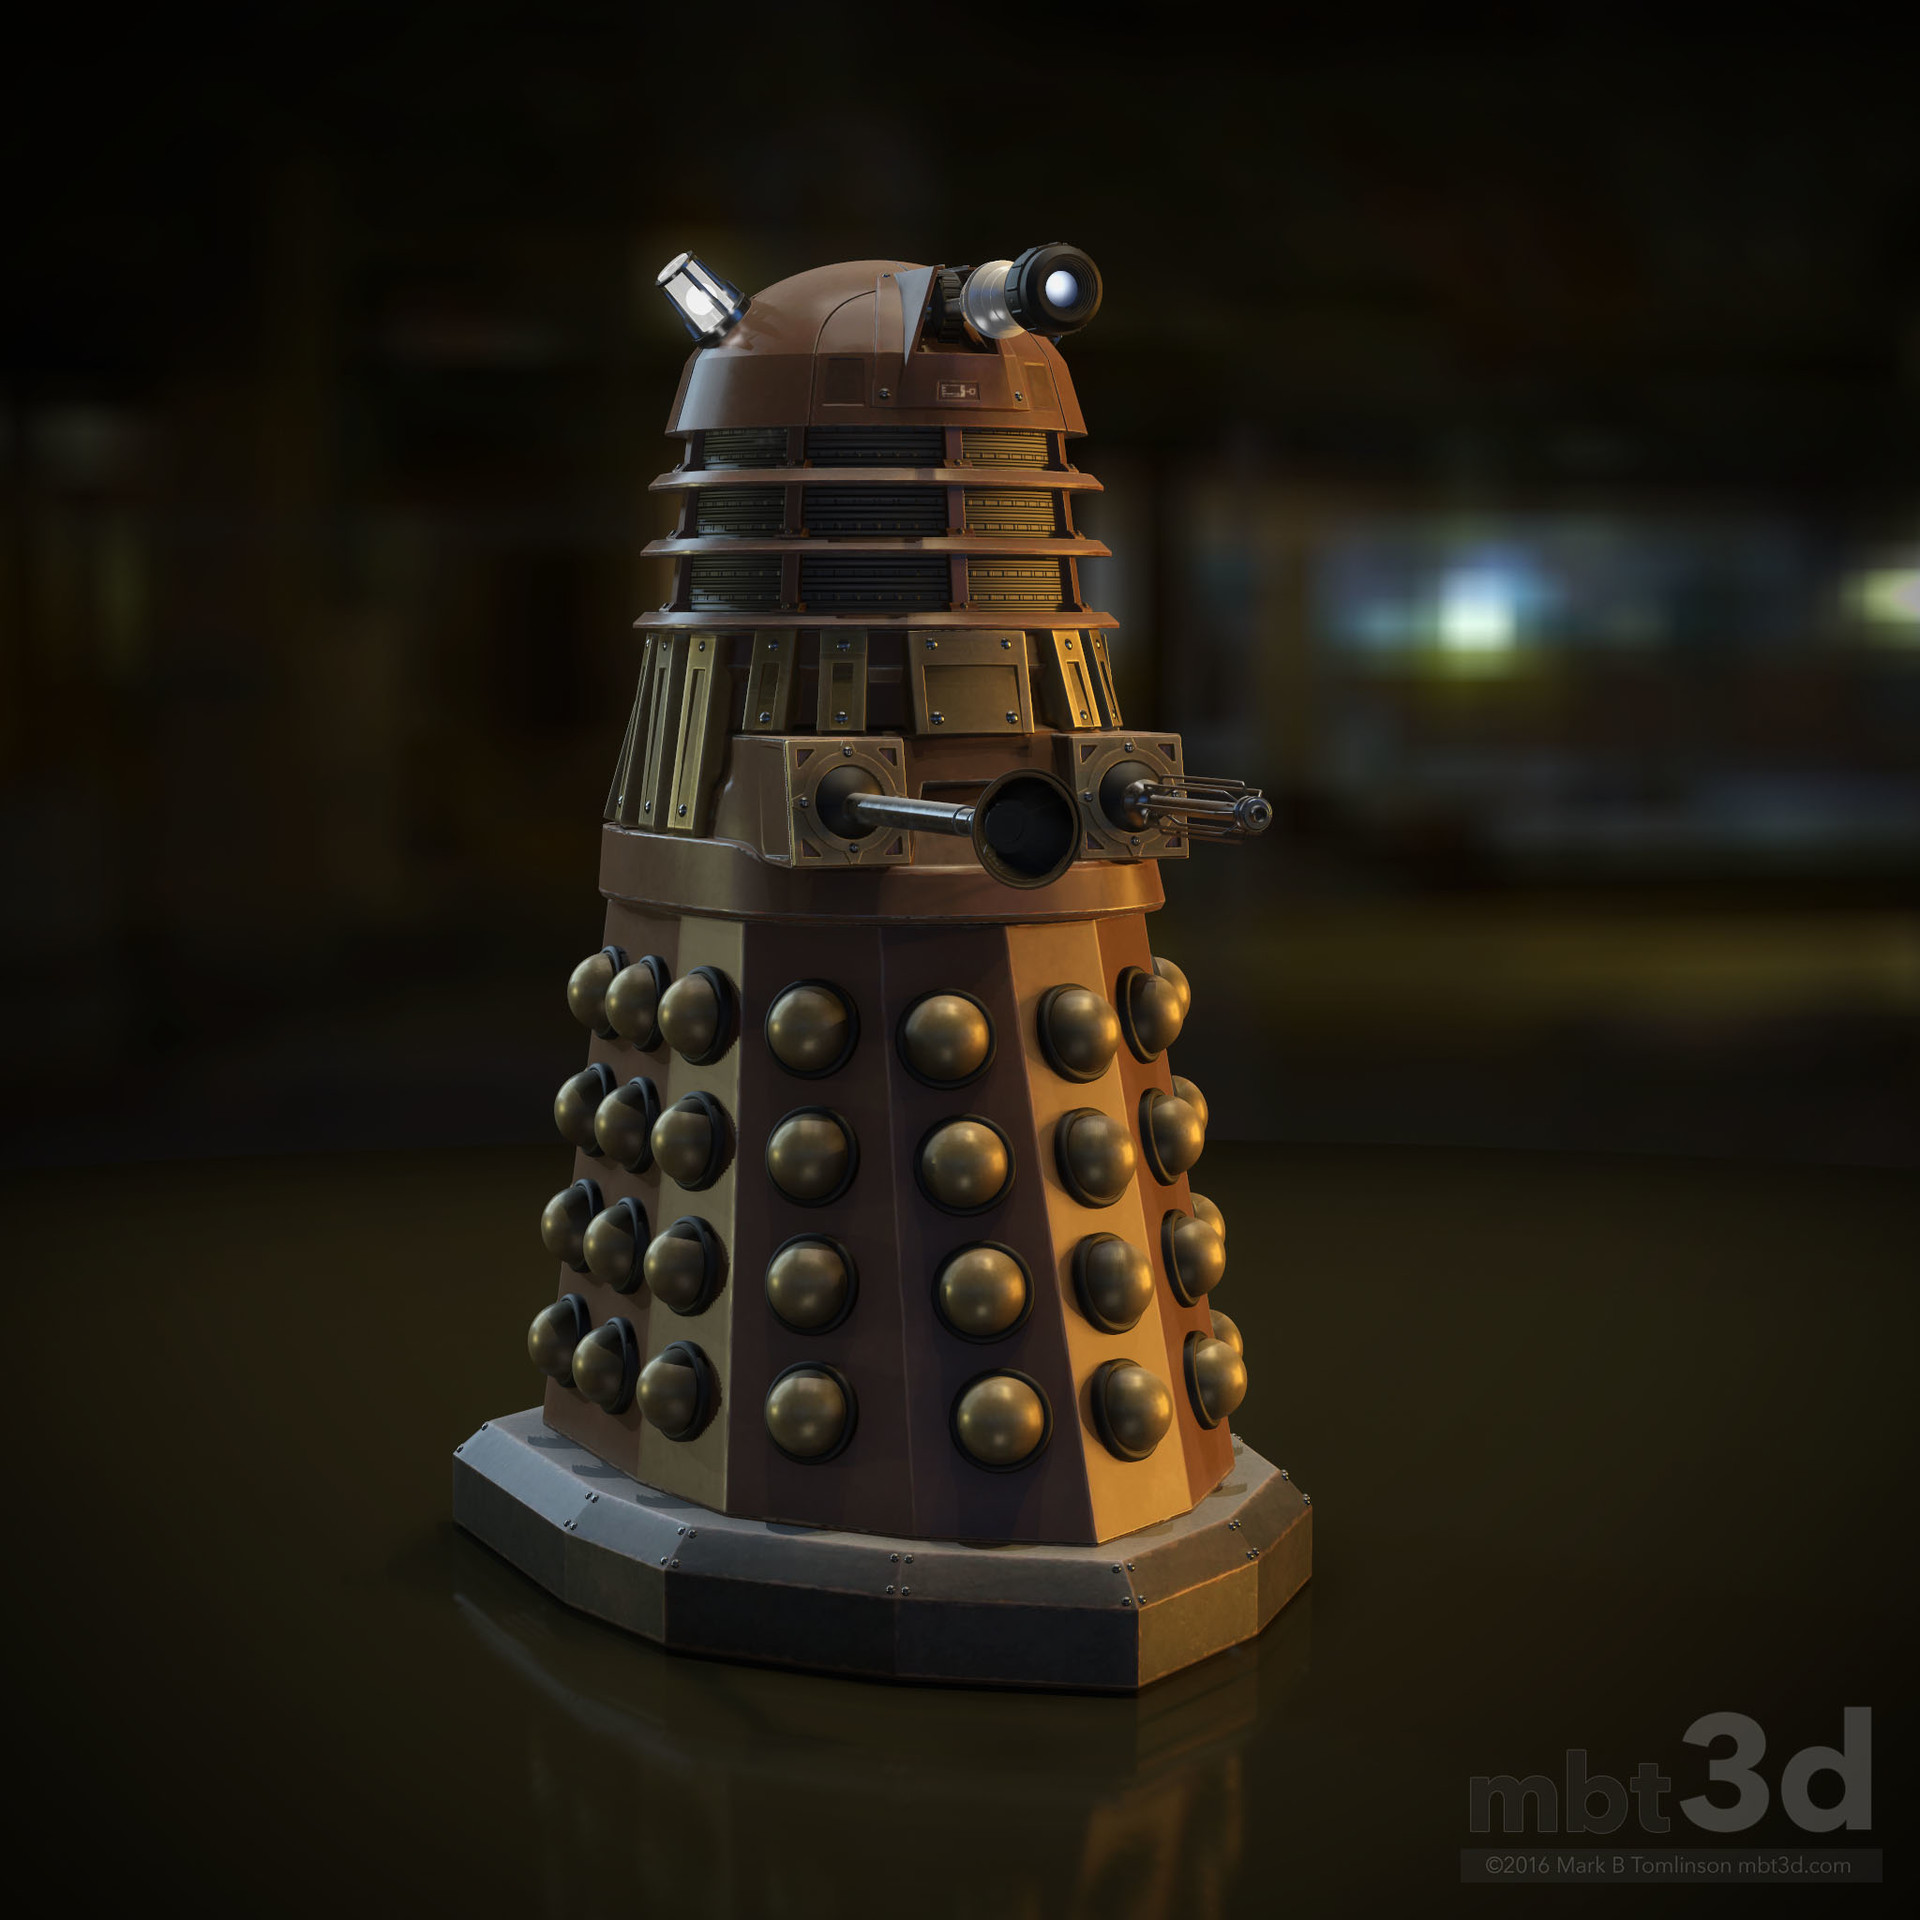 Mark b tomlinson dalek toolbag render final 2k 0004 5